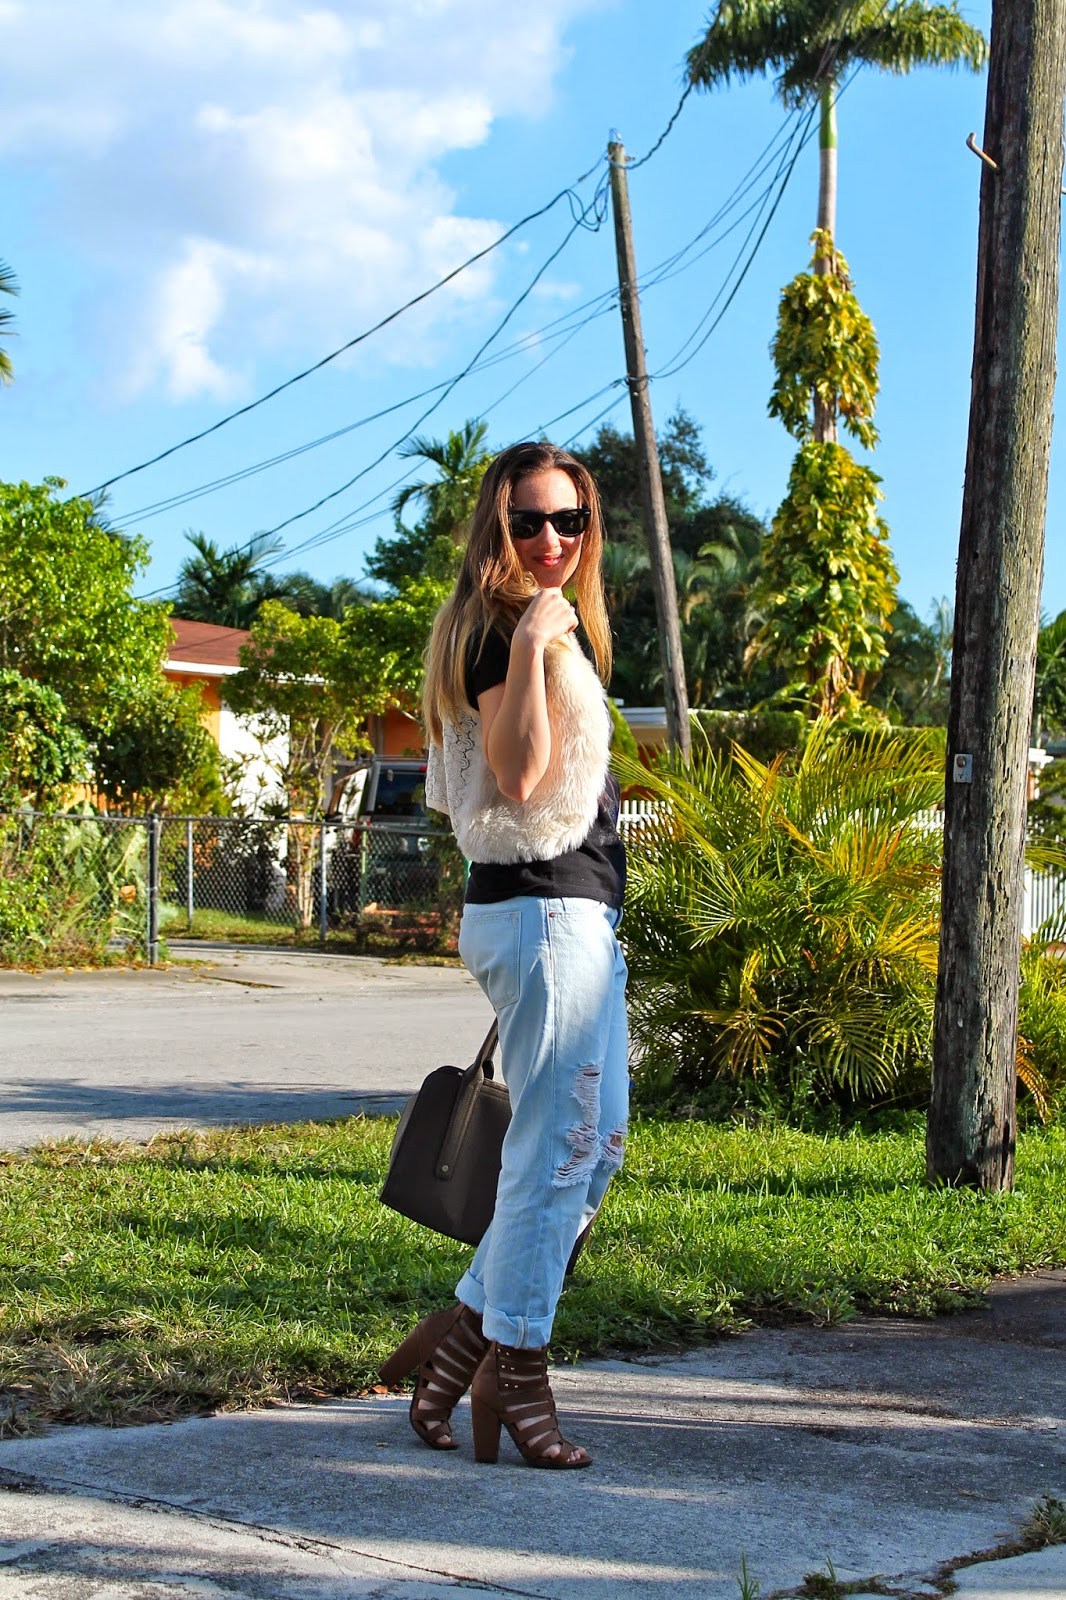 GAP, consignment, JCPenney, Steve Madden, J. Crew, Ray-Ban, 3.1 Phillip Lim for Target, street style, style blog, fashion blog, Miami fashion blogger